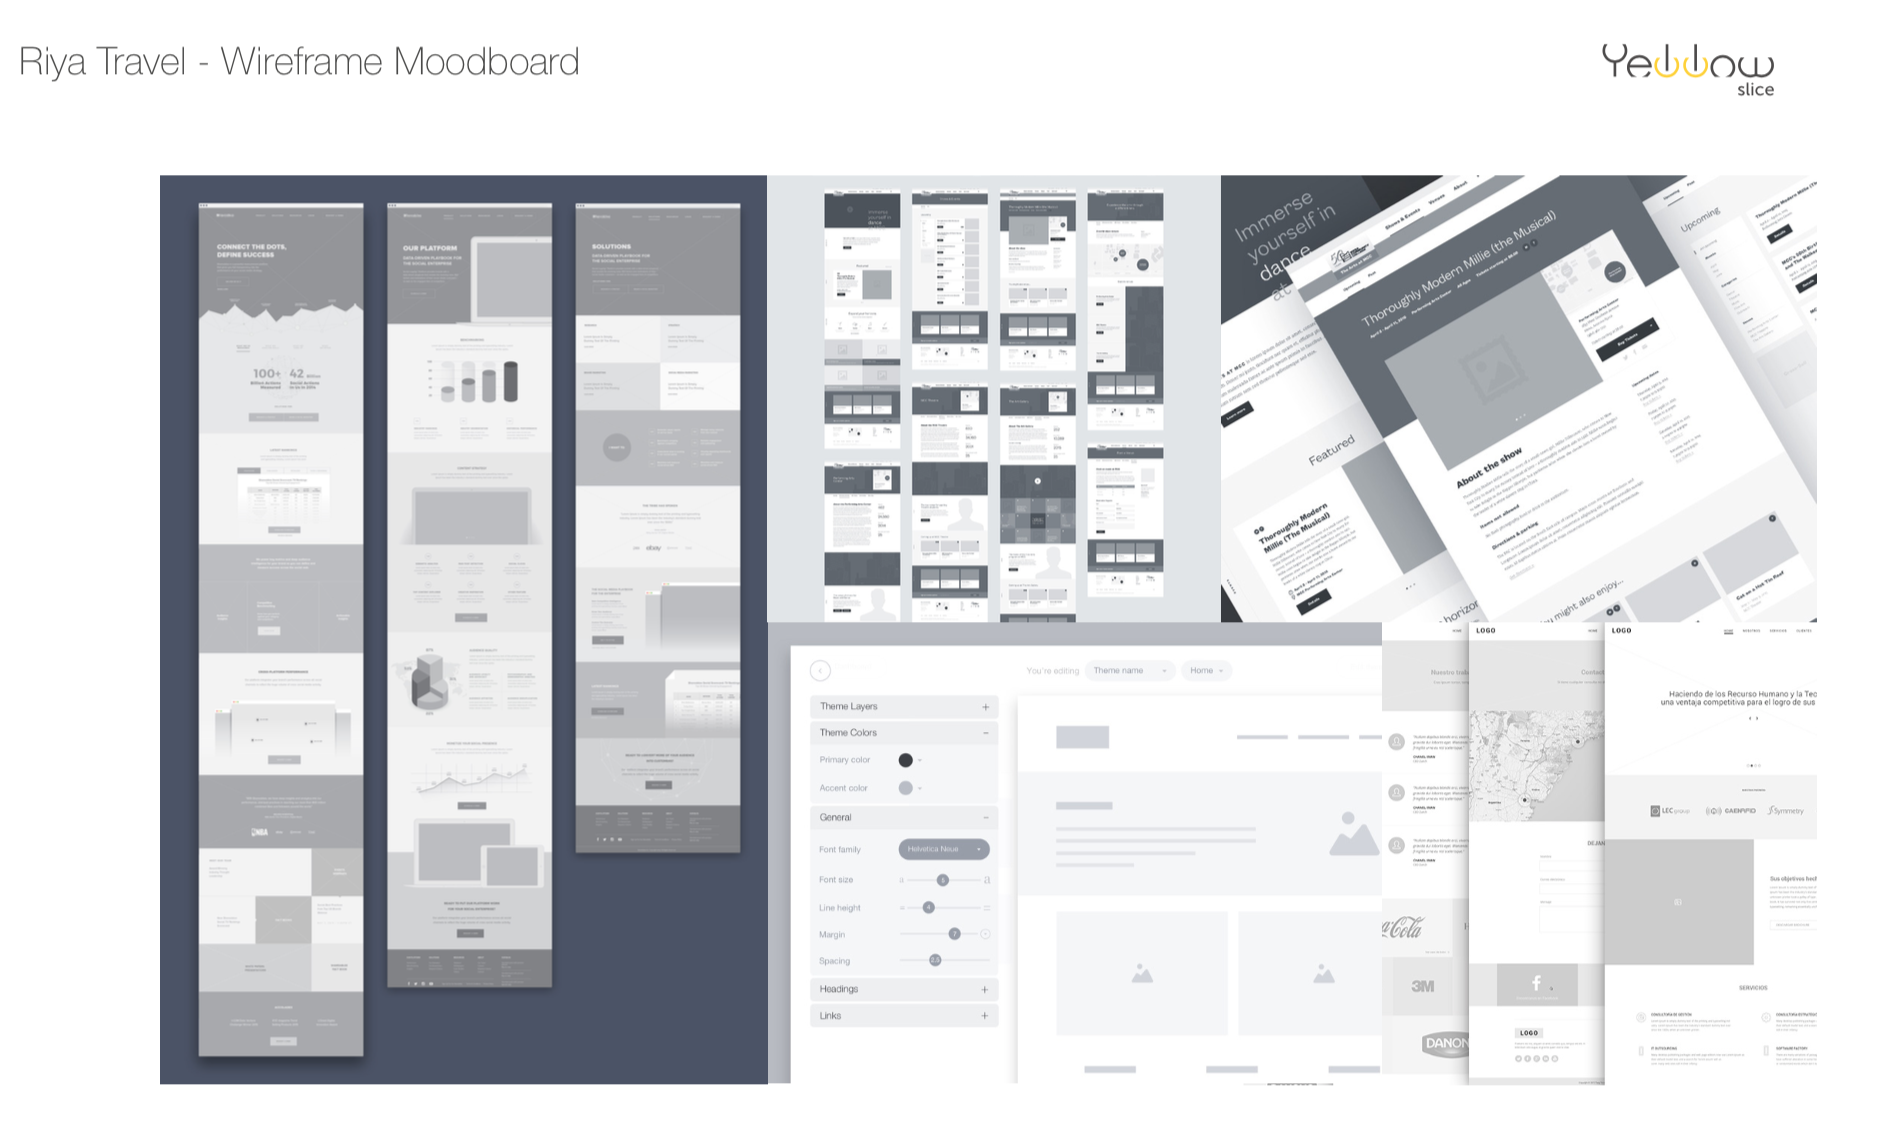 UX_Wireframe Moodboard_Riya Travel